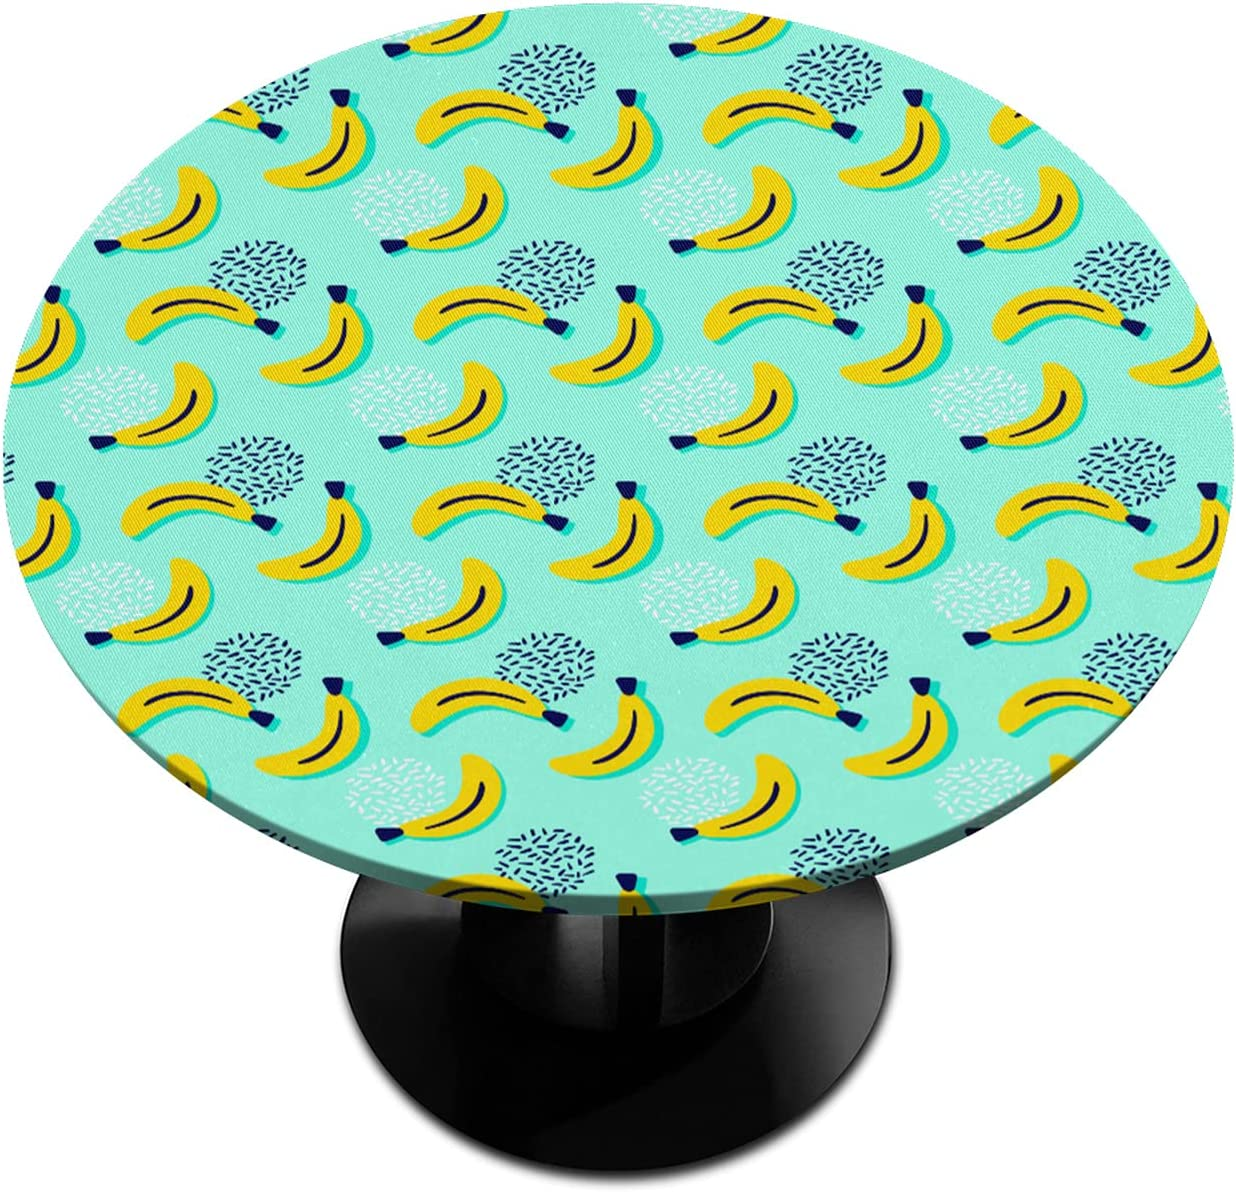 Banana Pattern Home Special Regular discount sale item Round Fitted Tablecloth Elastic with Edged